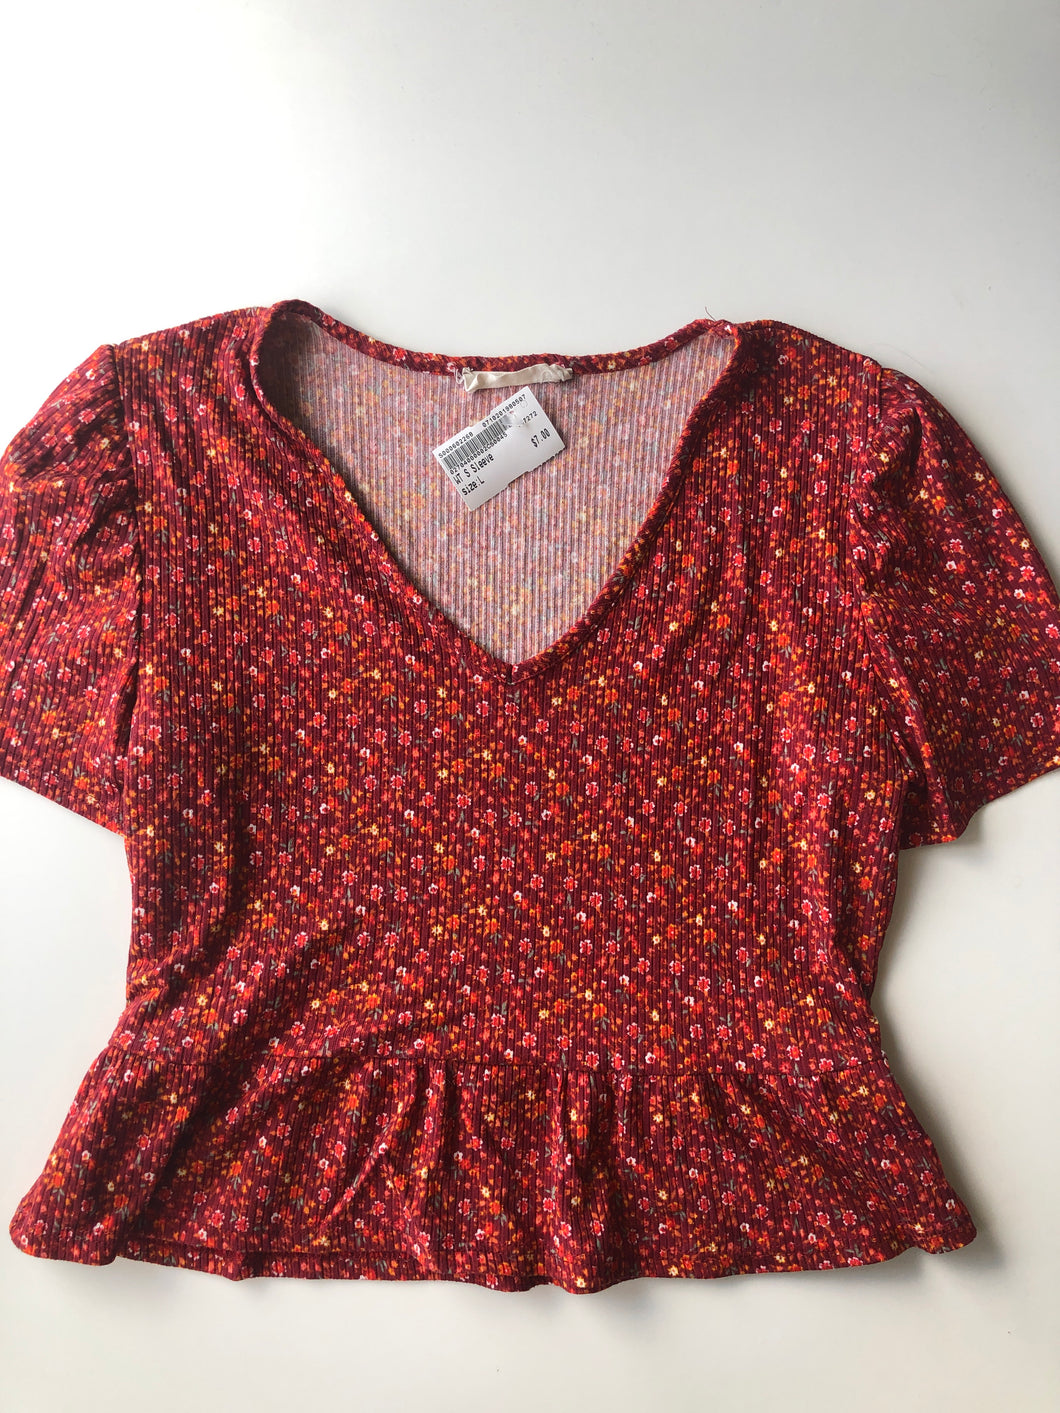 Gently Used Women's Poison Ivy Top Size L